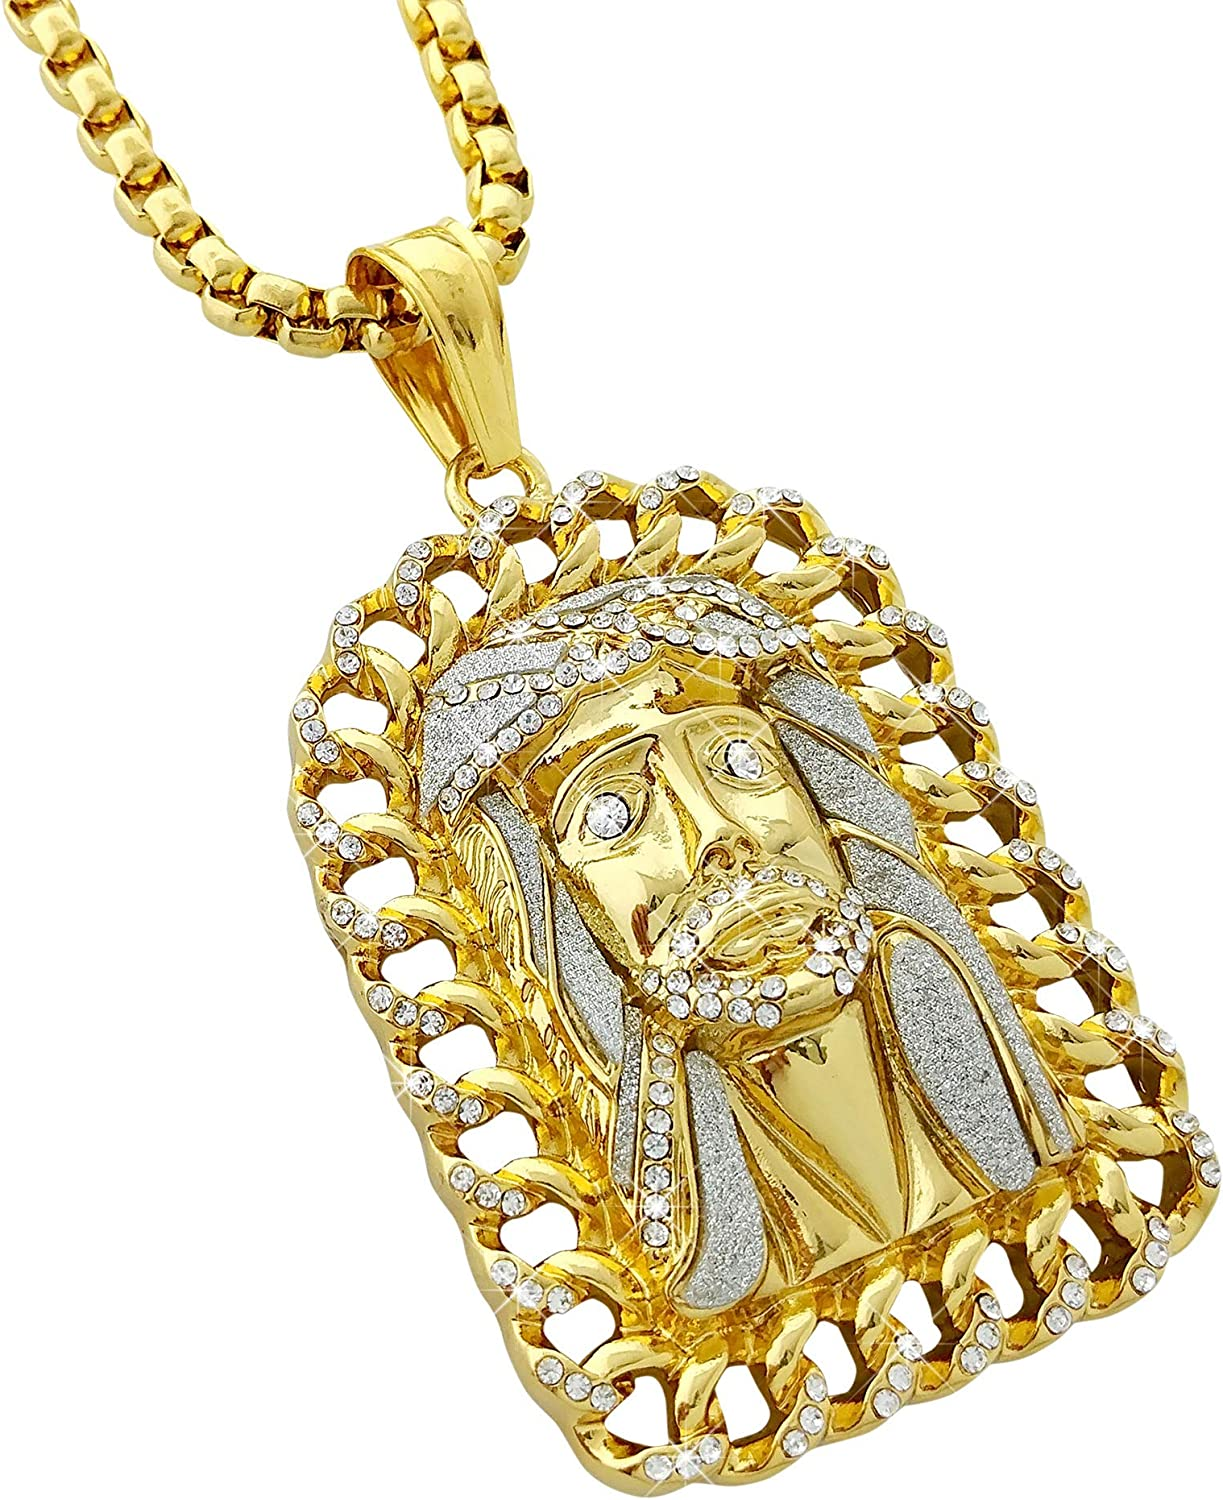 REAL SOLID STERLING SILVER 1 Row 3mm Tennis Chain Bling CZ Jesus Head Face Piece